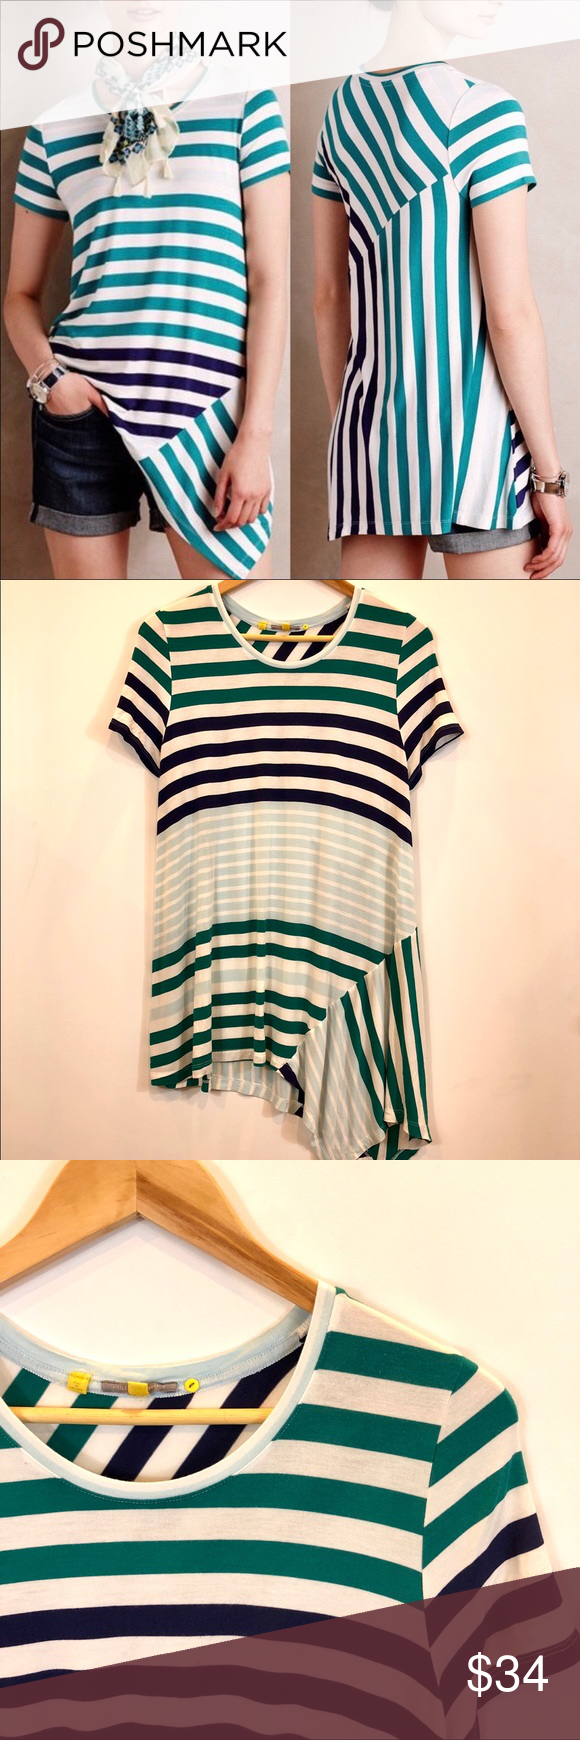 e800e6f8408 Anthro | Little Yellow Button Asymmetrical Top Little Yellow Button striped  tunic. Blue, green